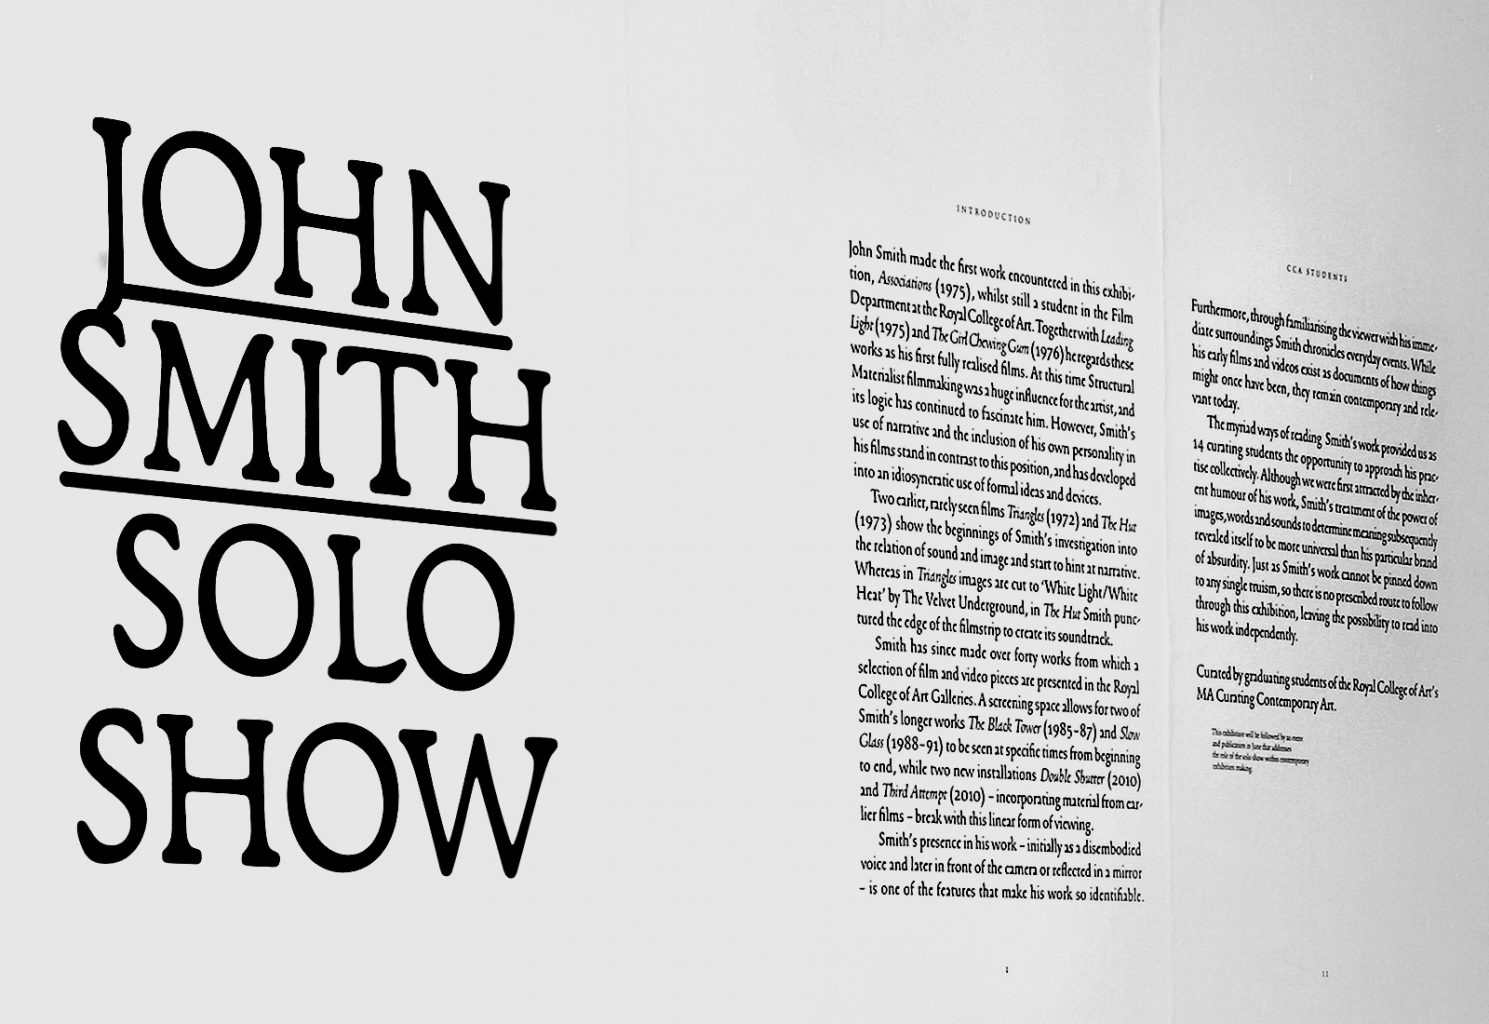 John Smith | Solo Show, exhibition by the Curating Contemporary Art Department of the Royal College of Art, designed by In the shade of a tree studio (founded by Sophie Demay and Maël Fournier Comte) together with Samuel Bonnet.